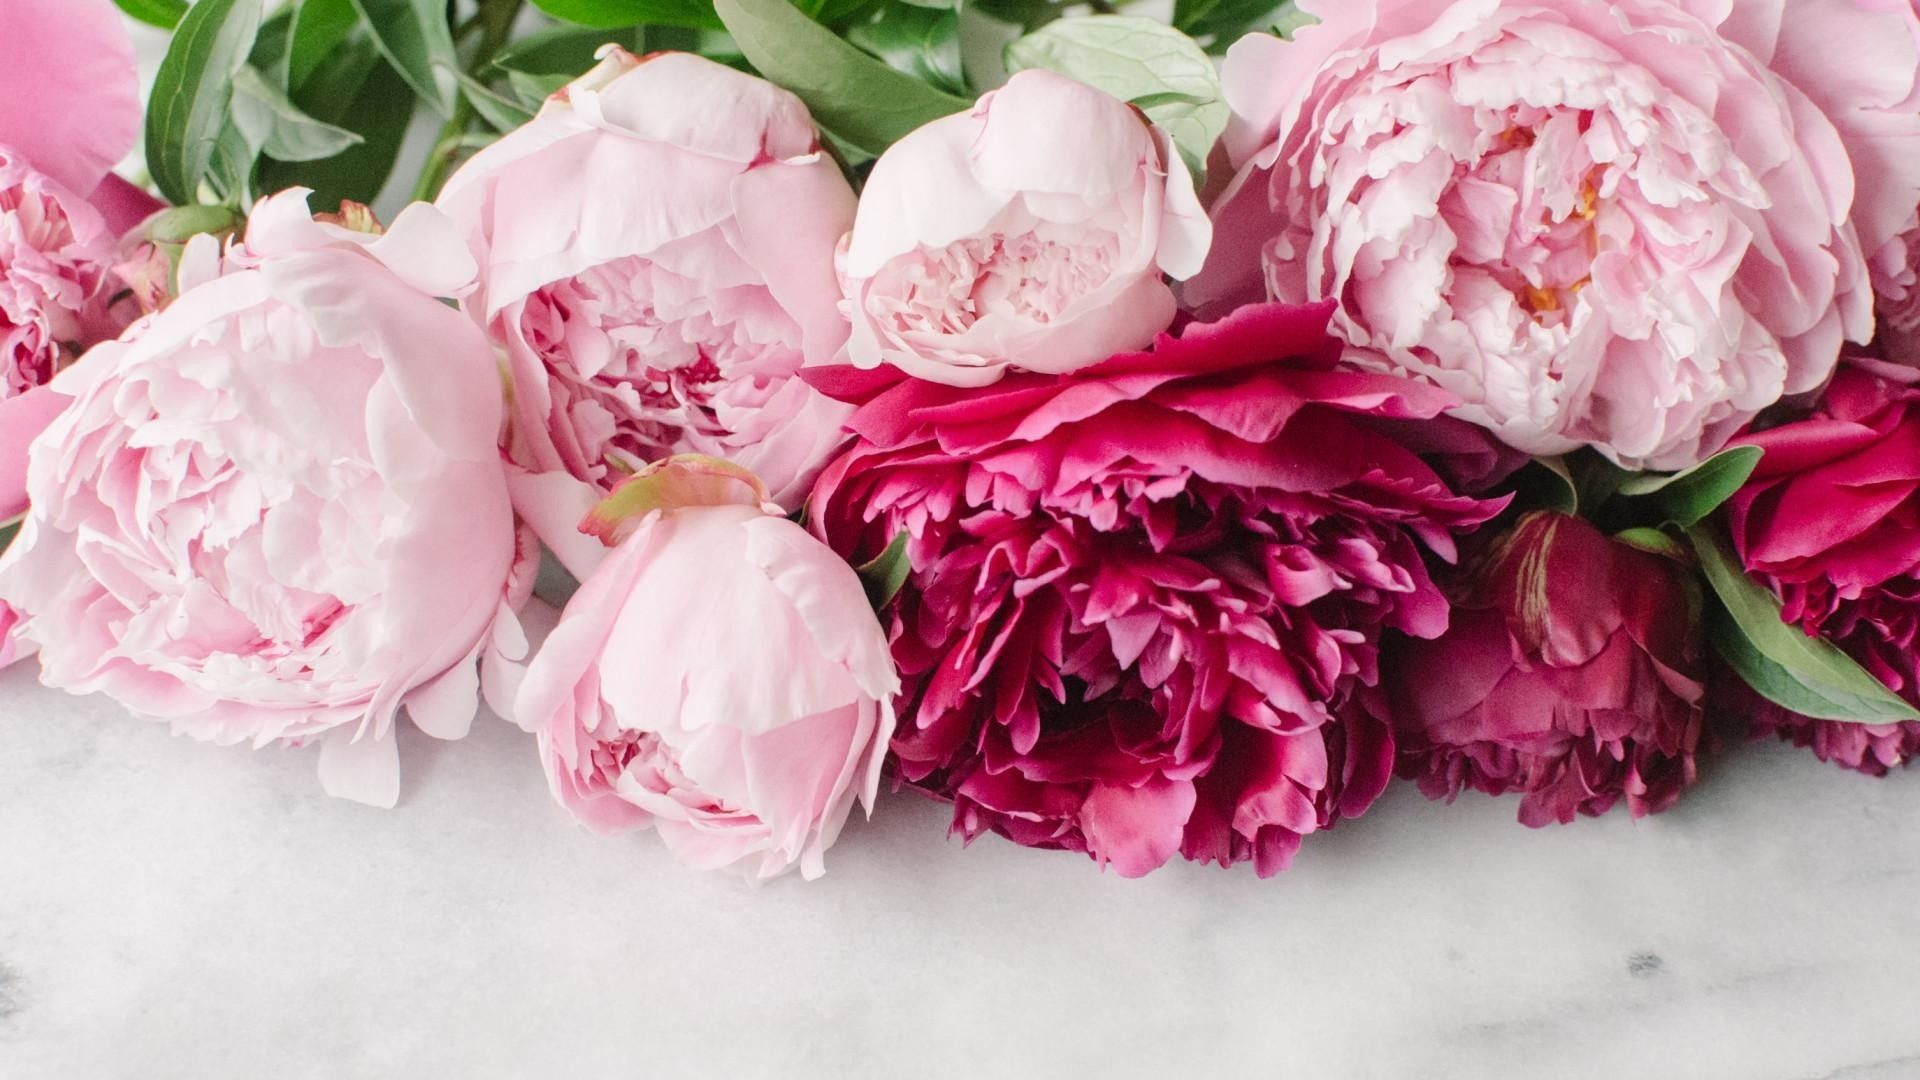 65 Peony Desktop Wallpapers on WallpaperPlay (With images